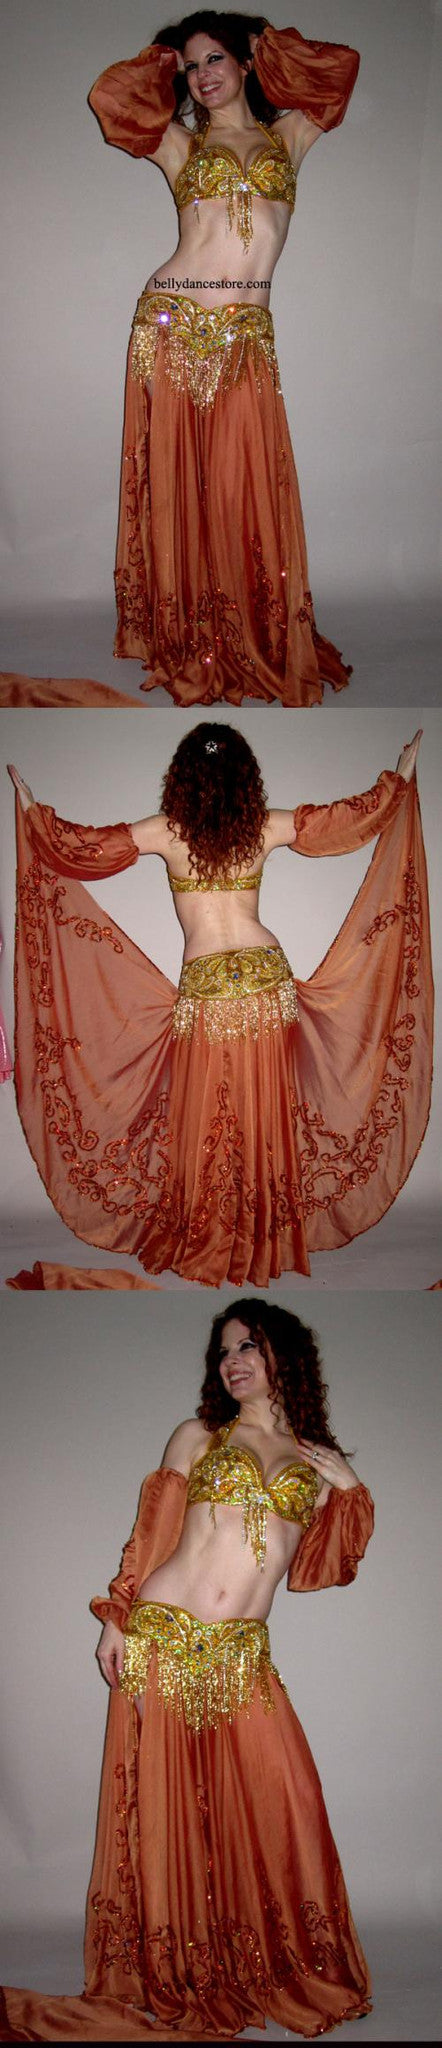 Pharaonics of Egypt Arabesque Skirt/Veil Set